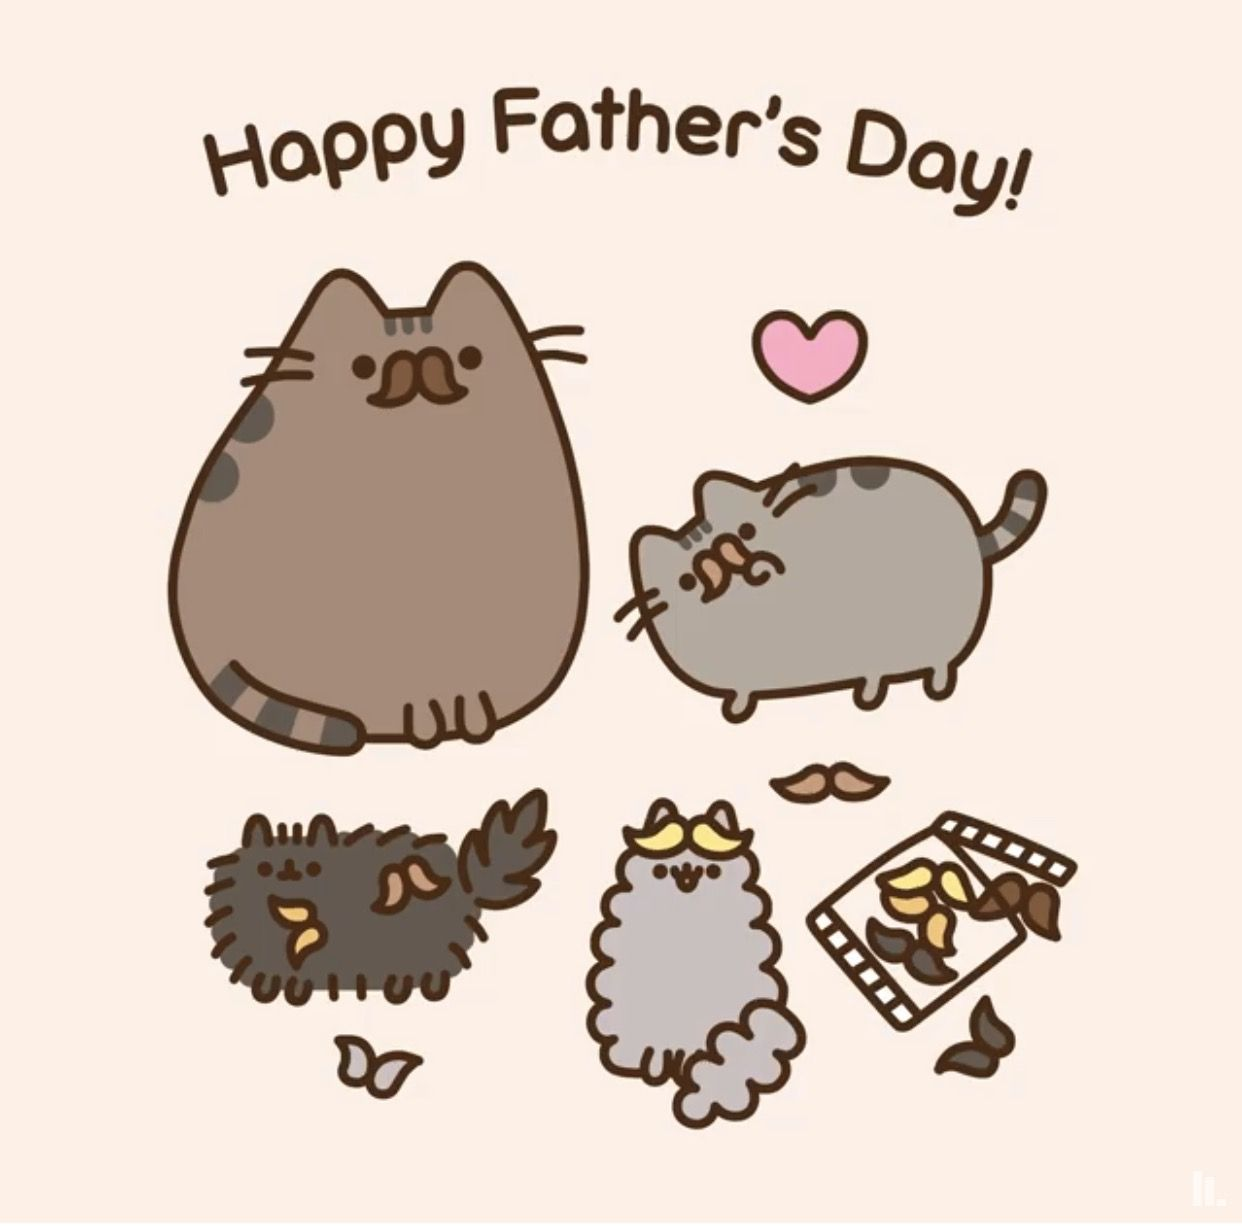 14177b0c46f1e4278209a3af889d852c fathers day with pusheen pusheen pinterest pusheen, pusheen